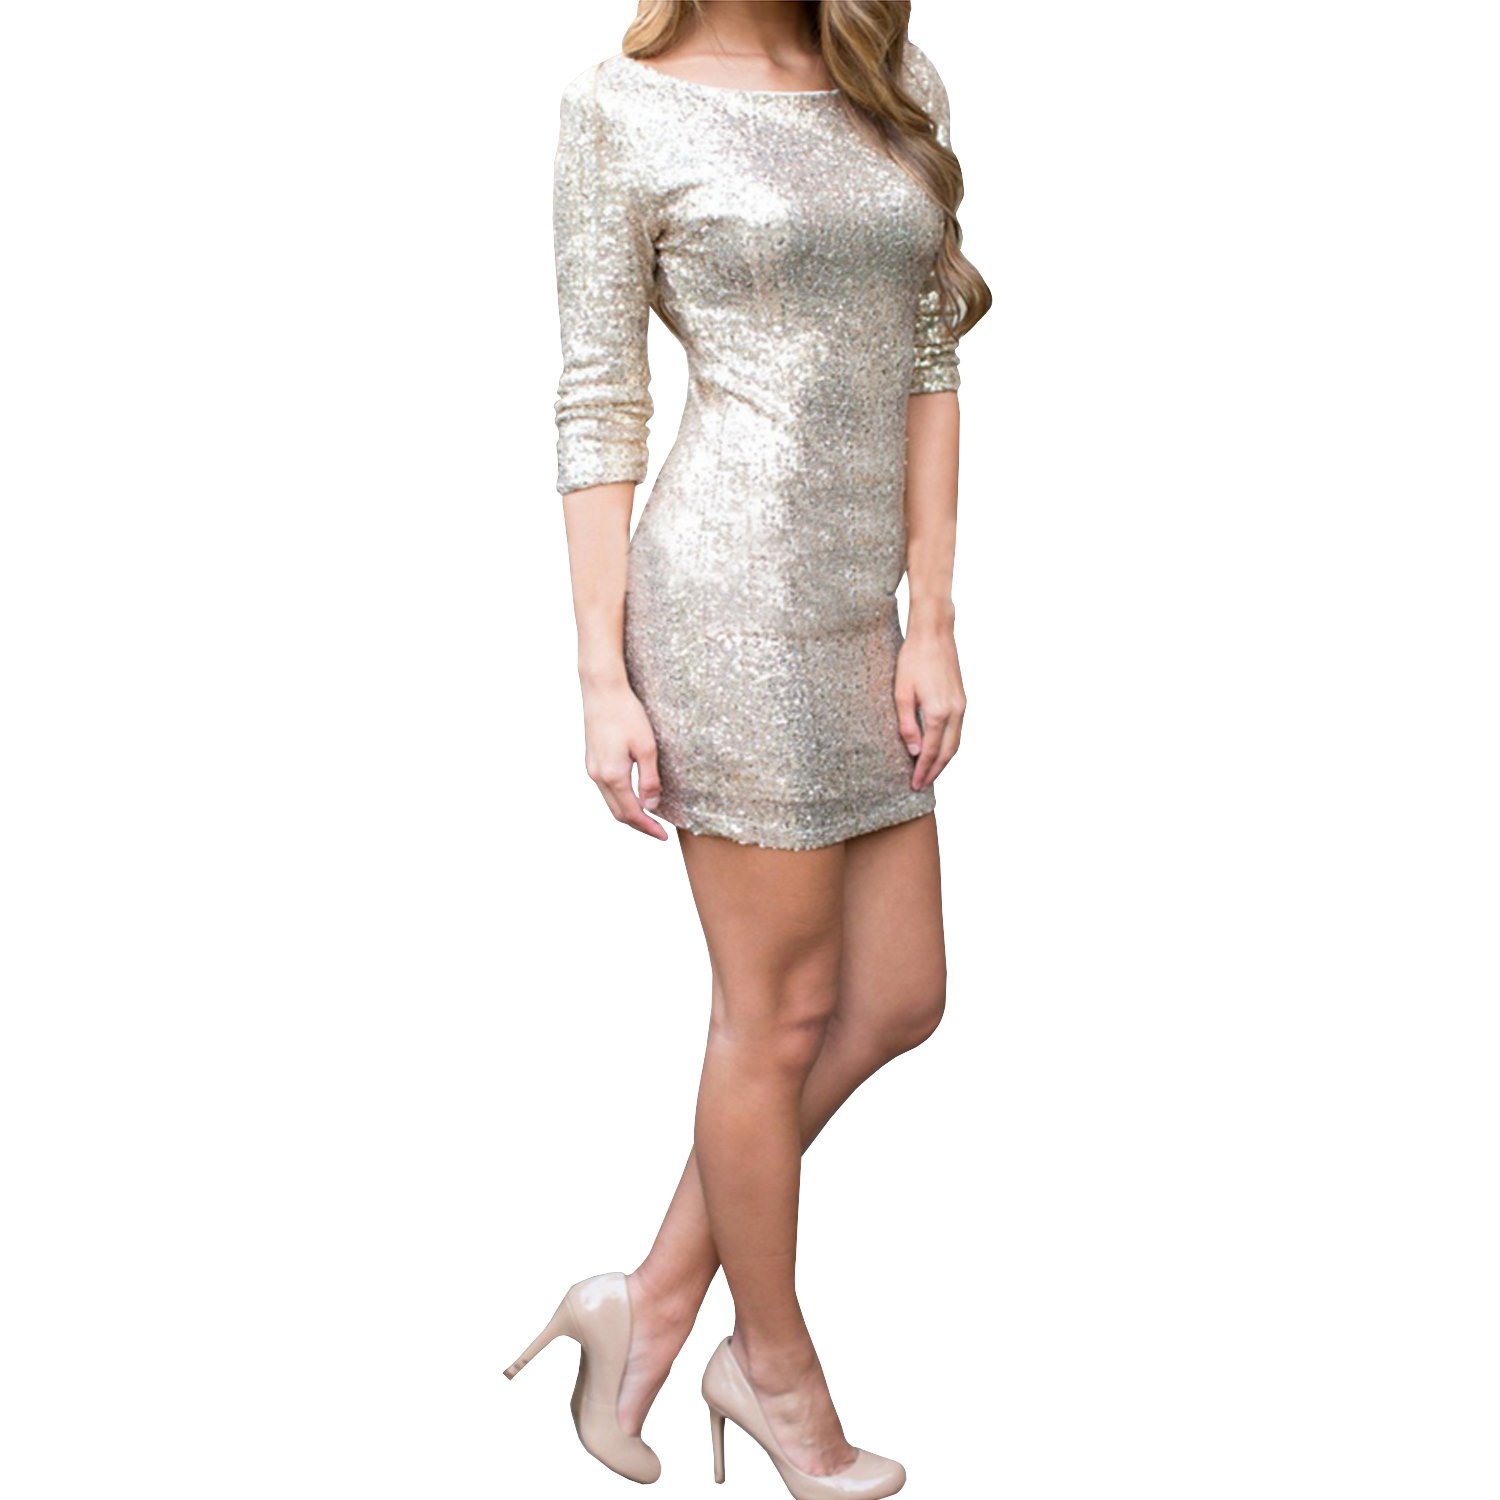 5adfbbdd Inshine Women Cut Out Sexy Sequin Glitter Club Party Cocktail Dresses:  Amazon.co.uk: Clothing